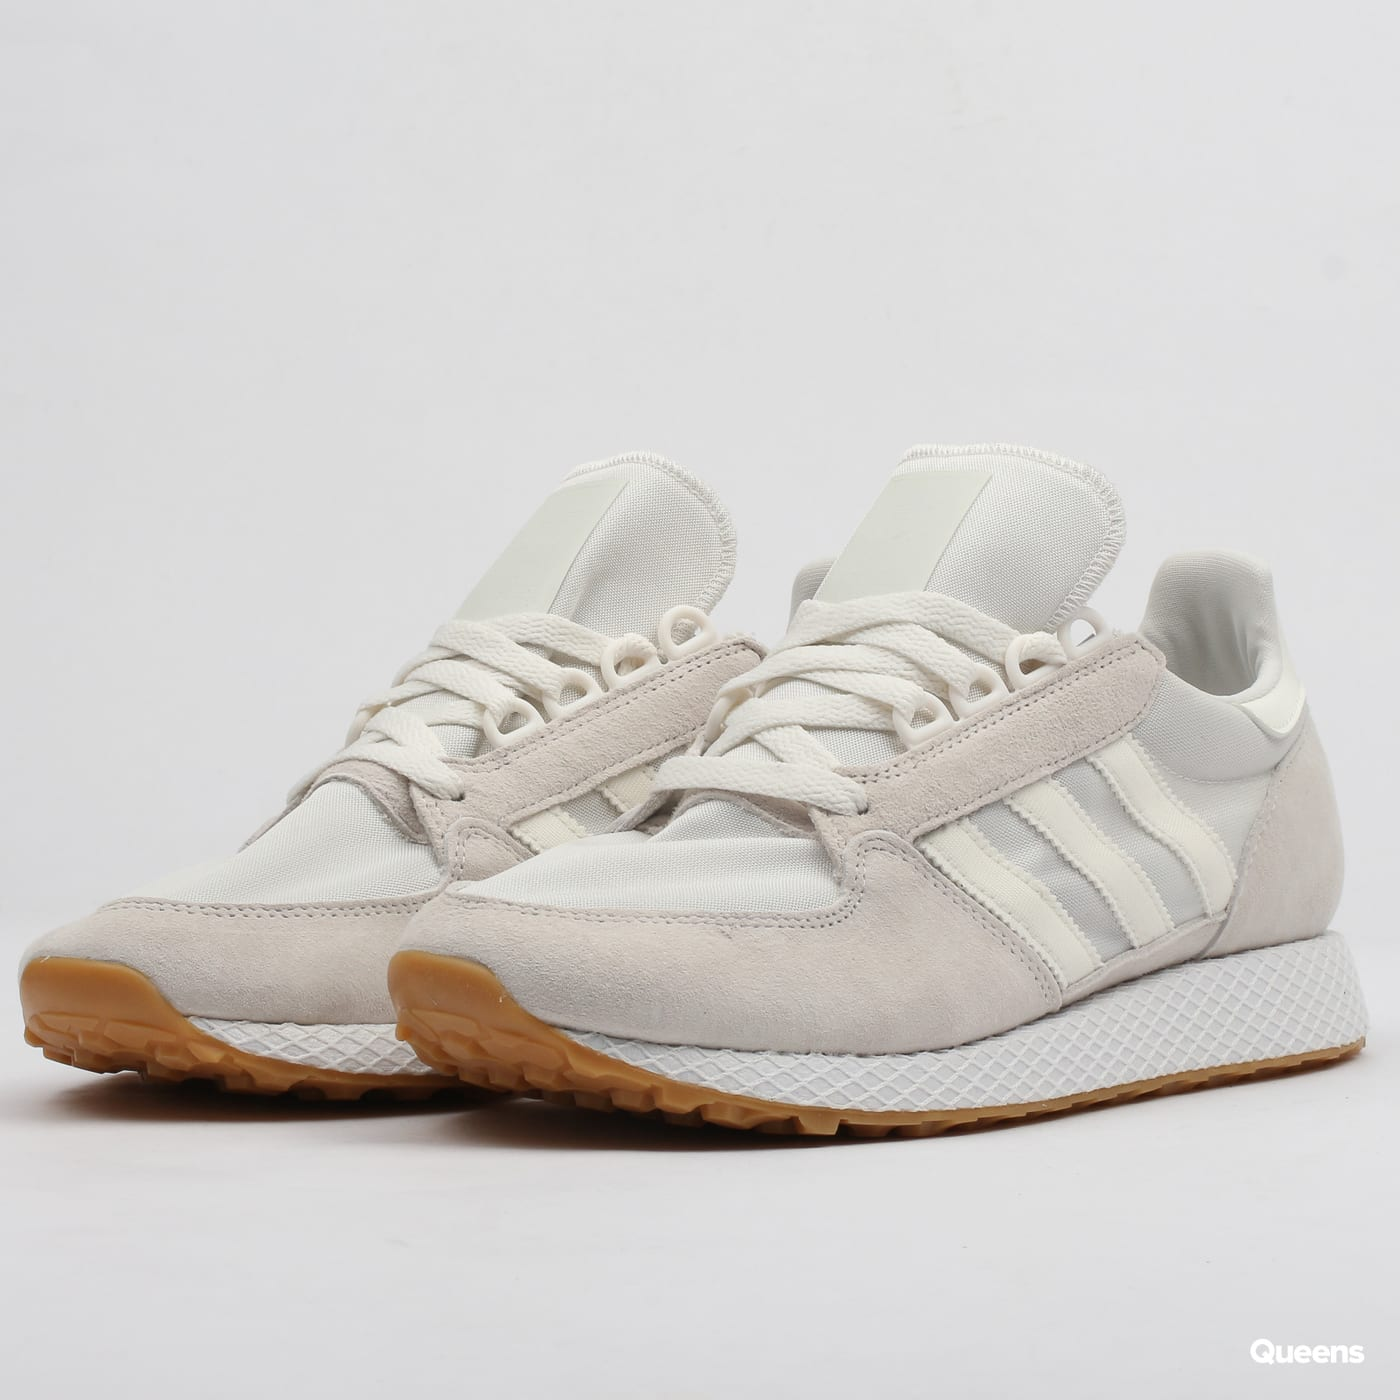 Ftwwht Originals Clowhi Adidas Forest Grove nvN8m0w